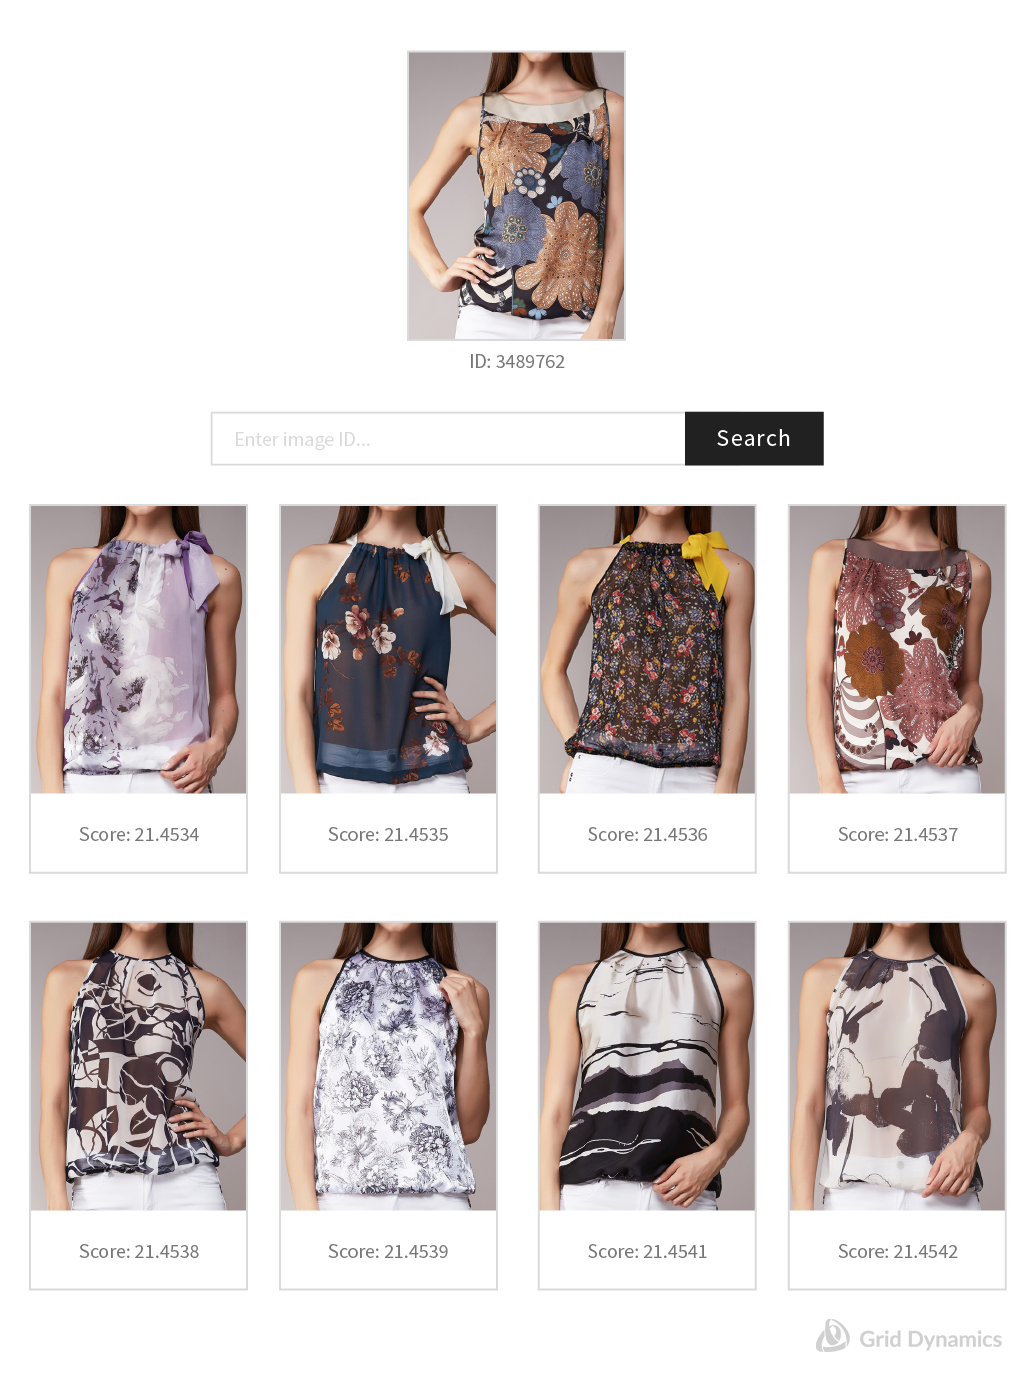 An example of image search with women's patterned tops